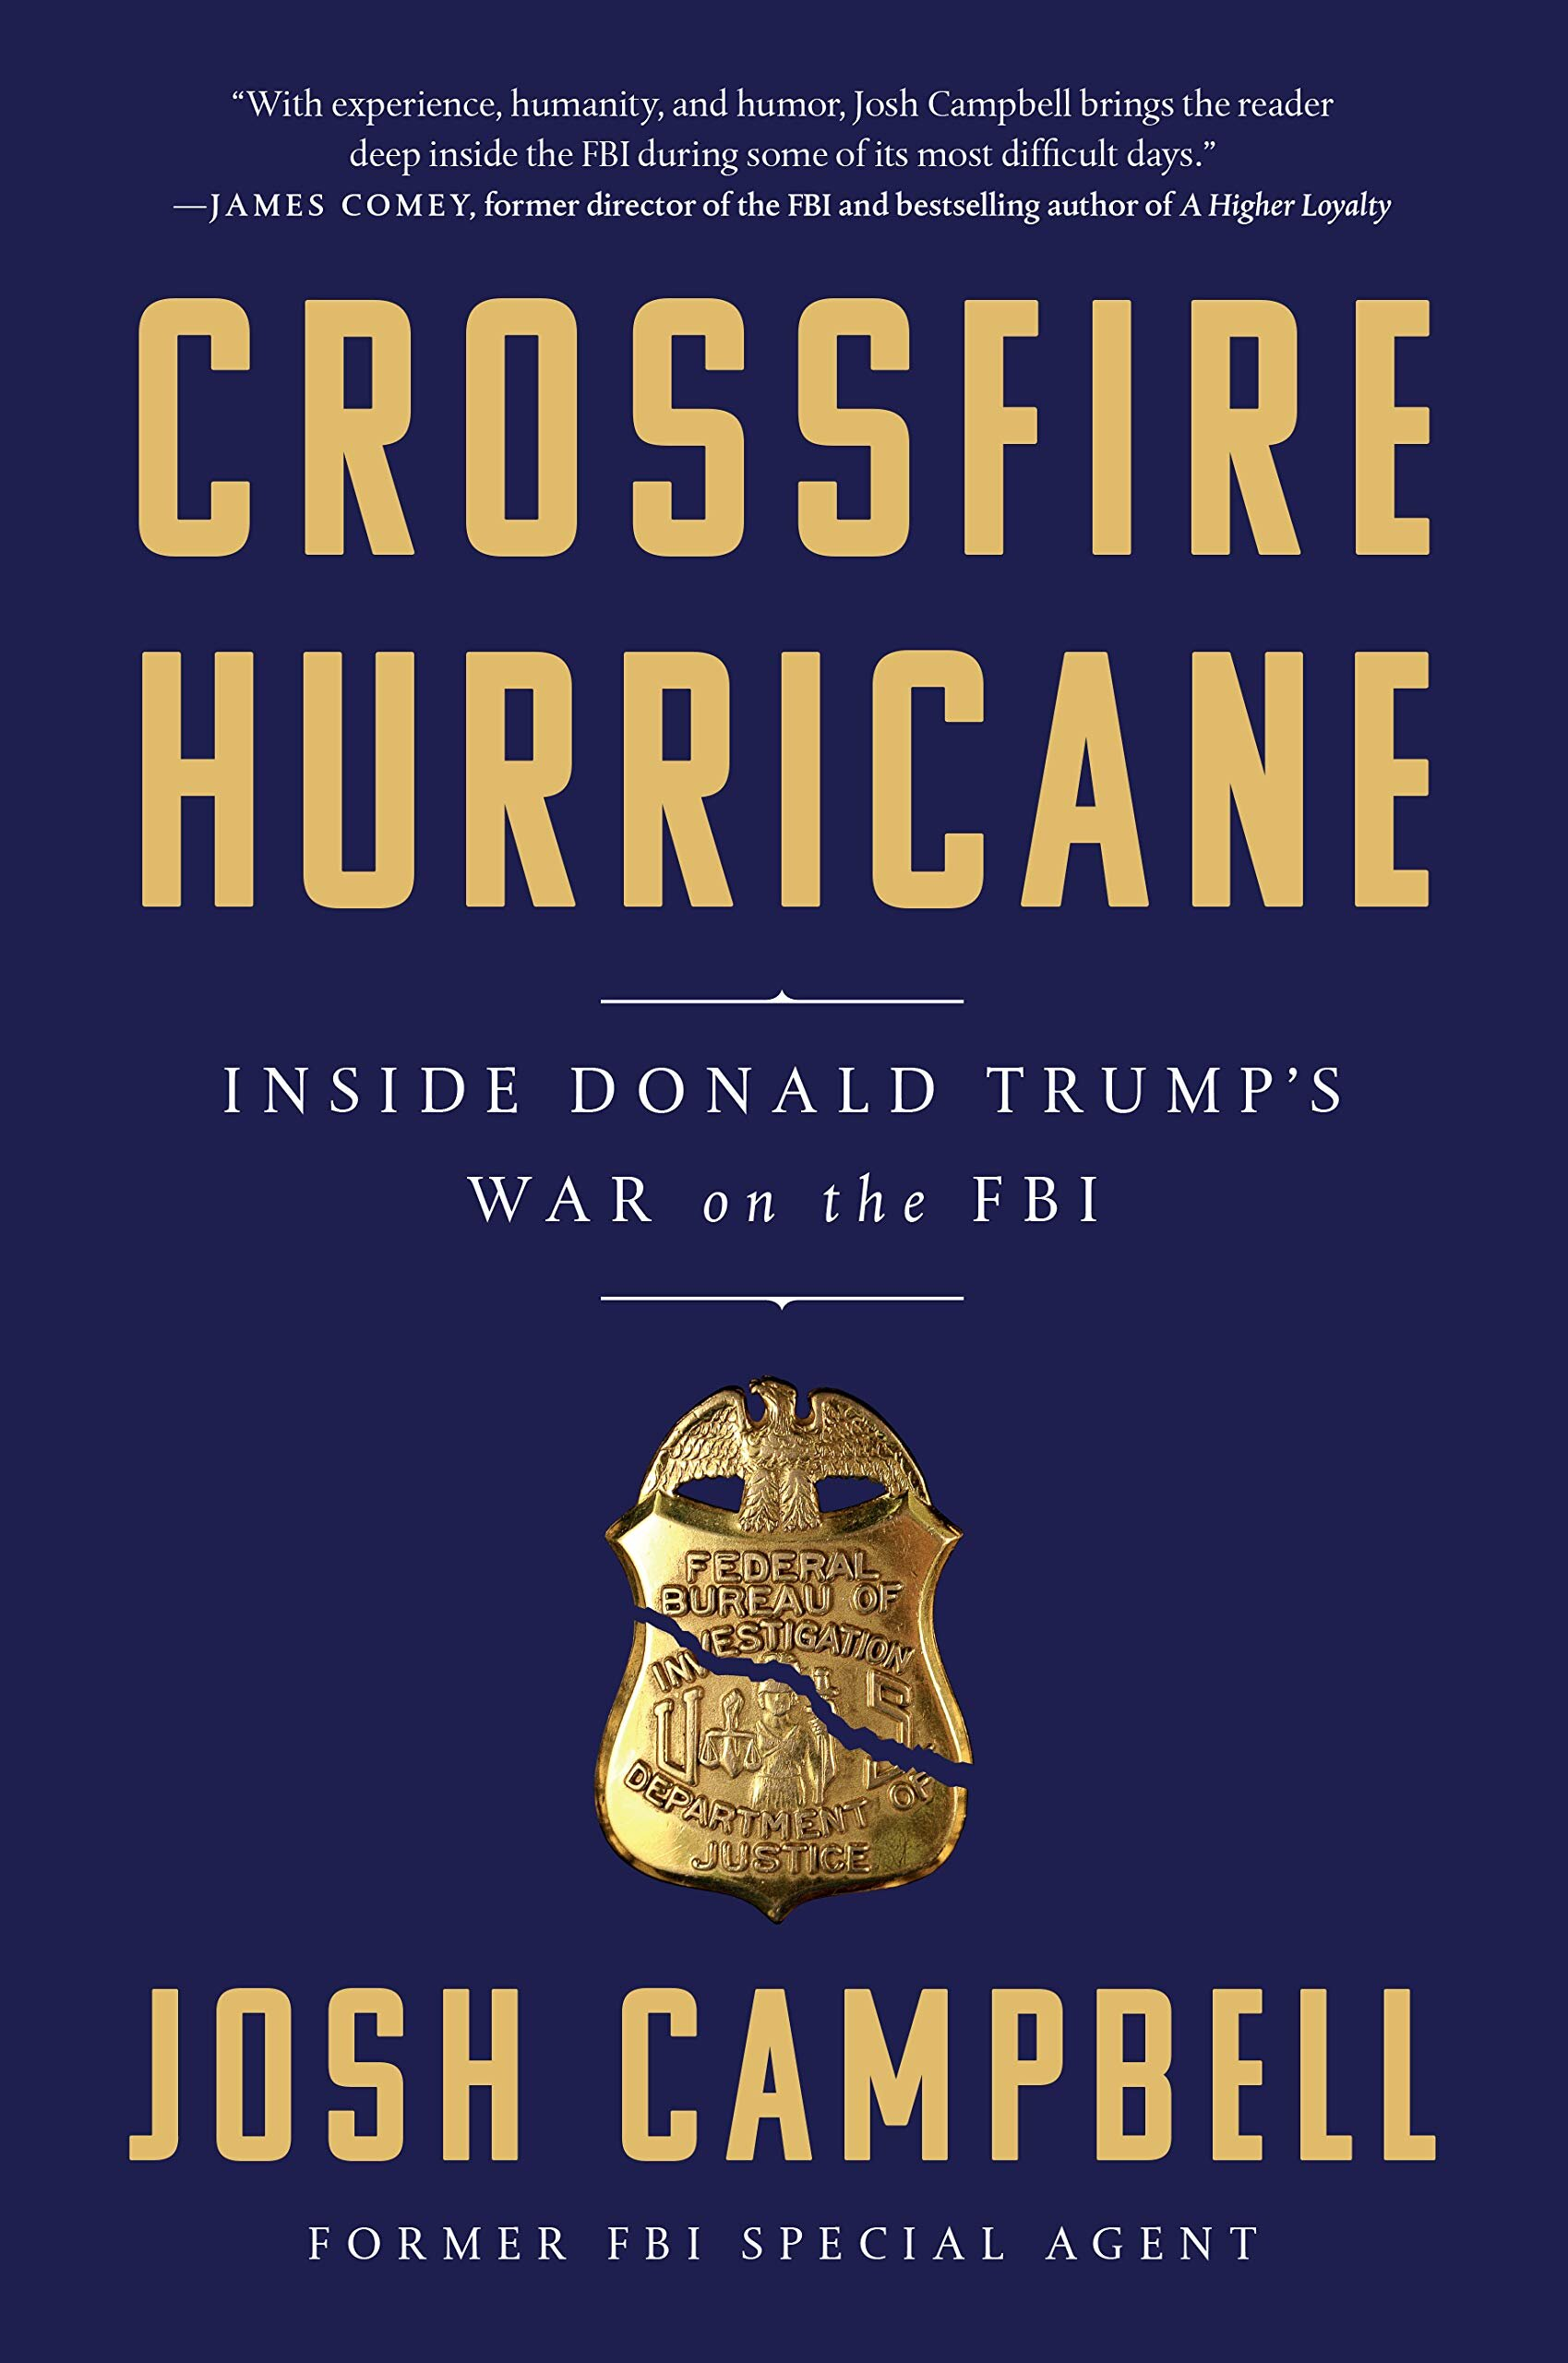 Crossfire Hurricane Inside Donald Trump's War on the FBI By Josh Campbell Algonquin Books, 2019.jpg  https://www.workman.com/products/crossfire-hurricane